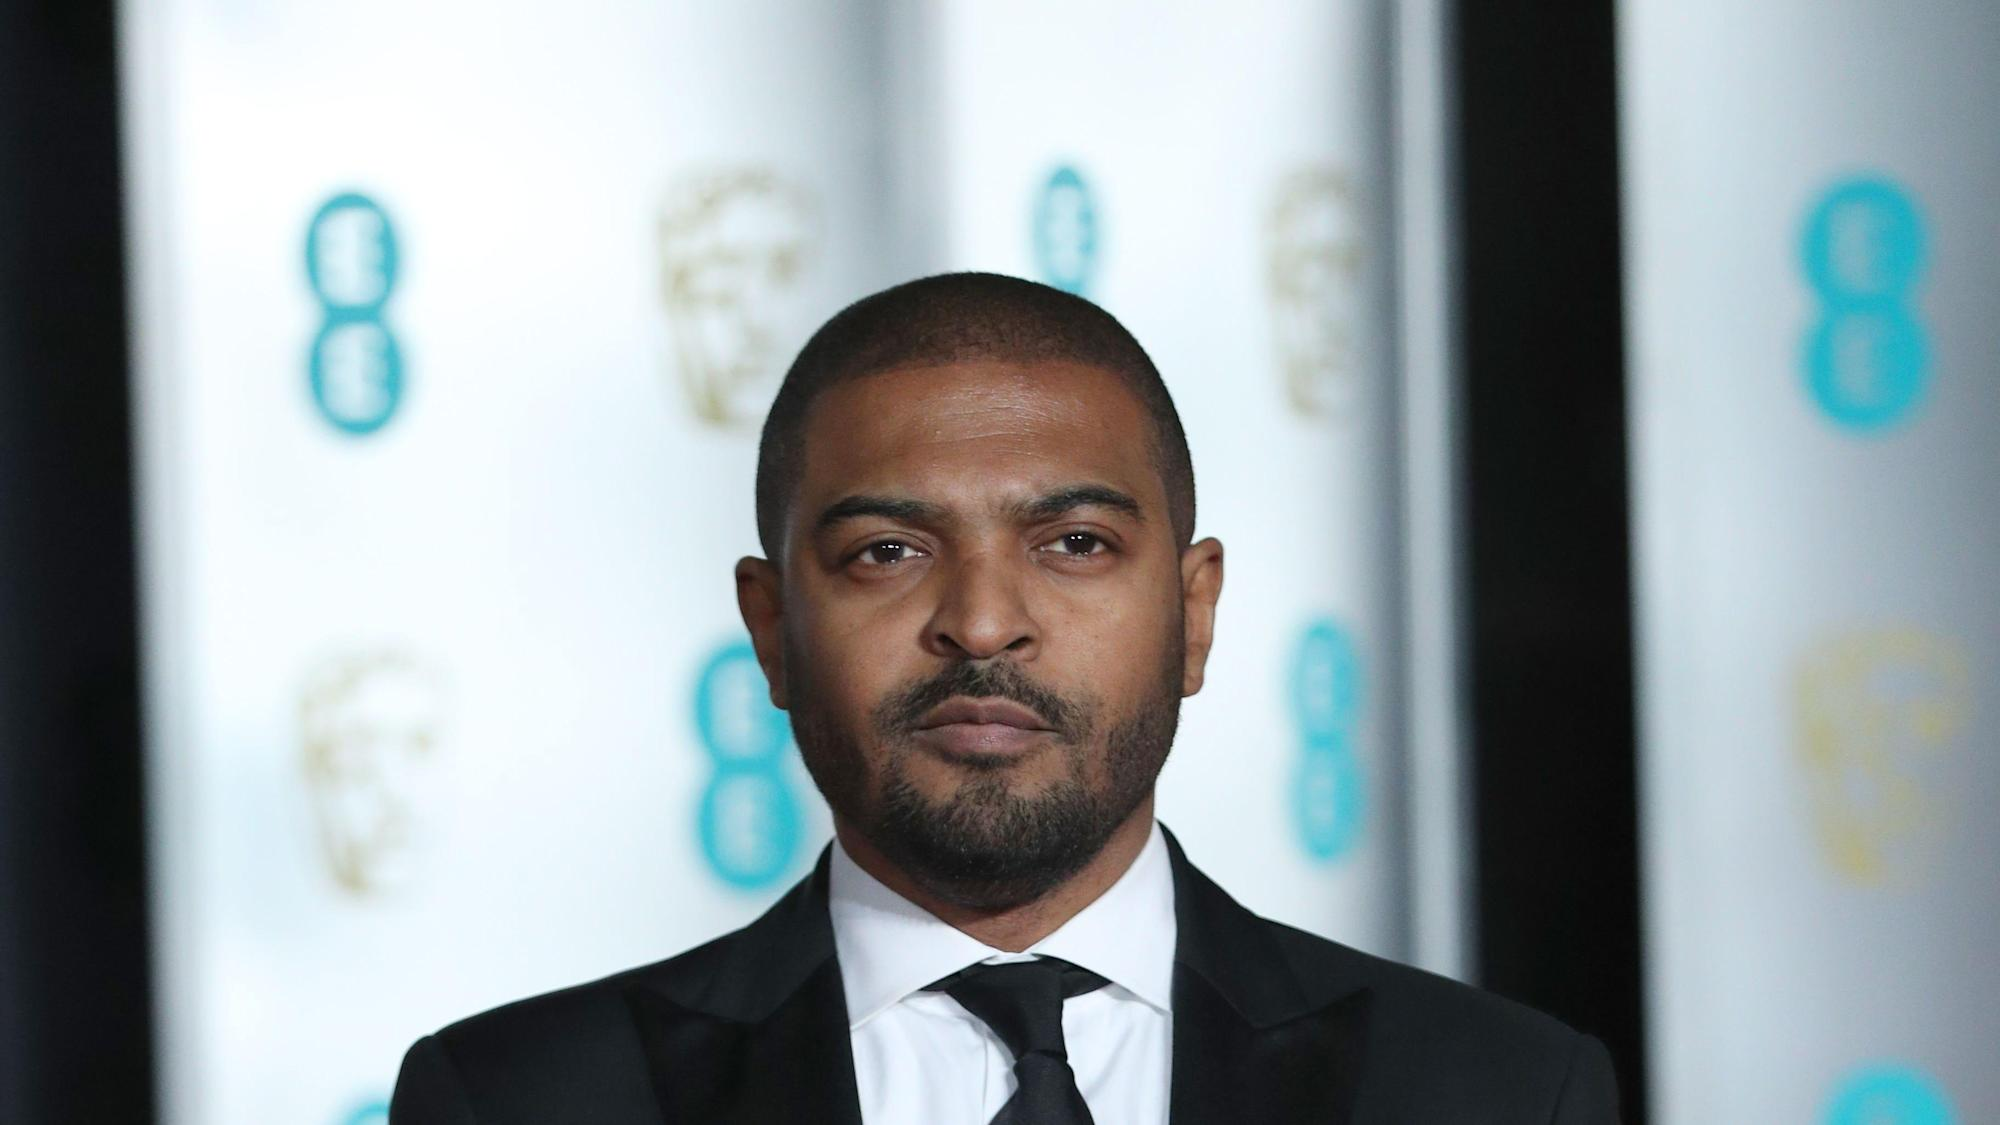 Noel Clarke hails 'the underrepresented' during impassioned Bafta speech